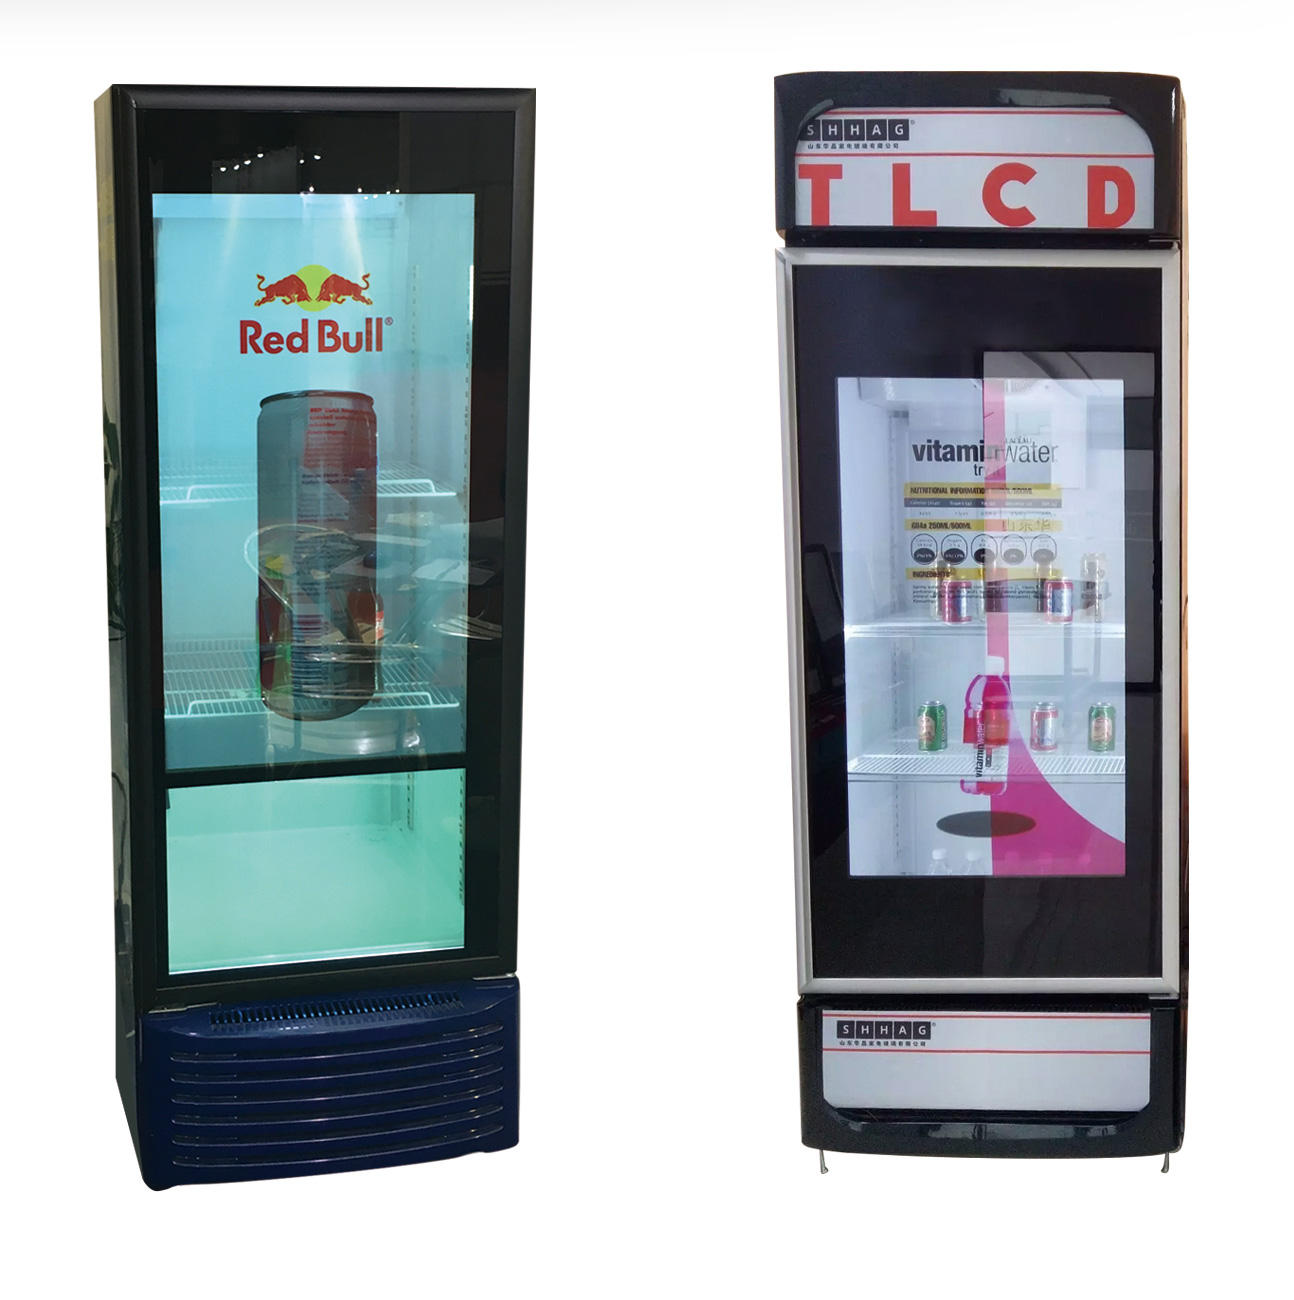 Transparent LCD screen fridge, refrigerator, freezer, cooler, with advertise video display function